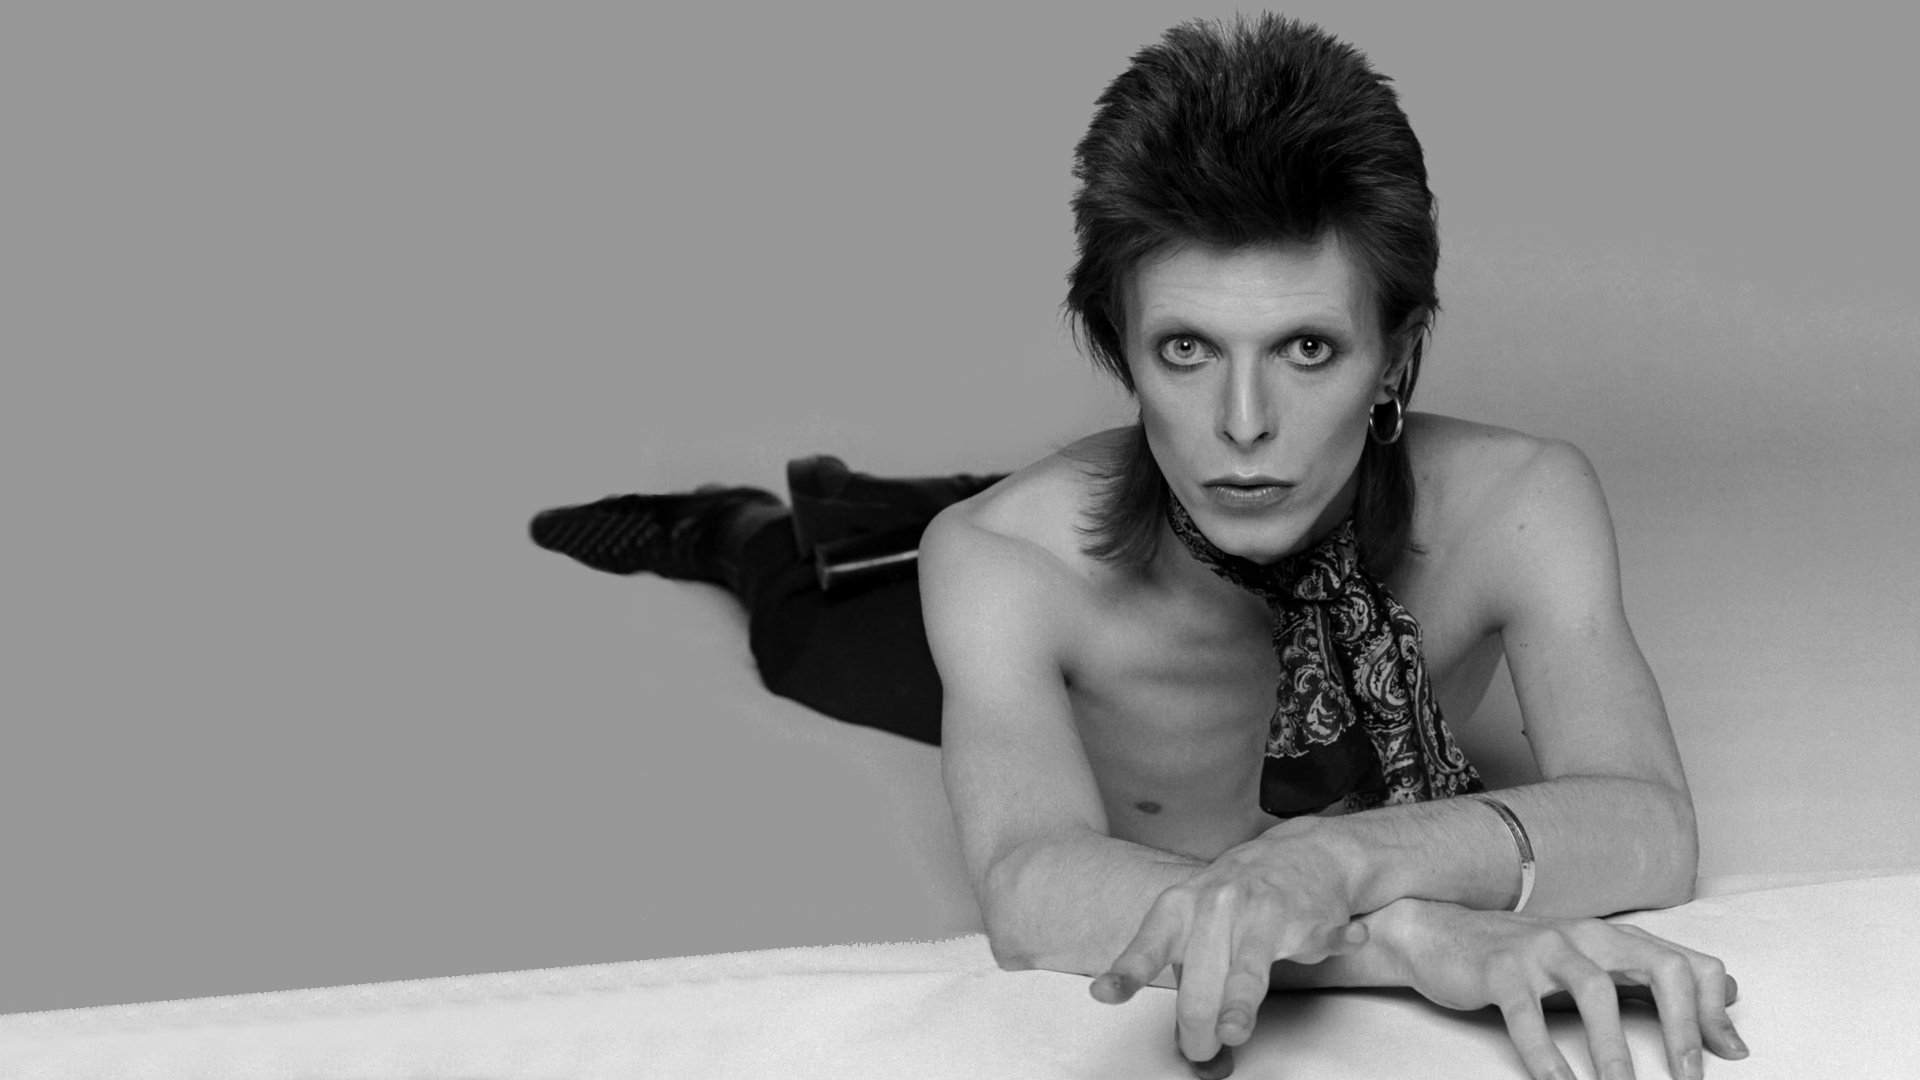 Reliving the changing fashion of david bowie.